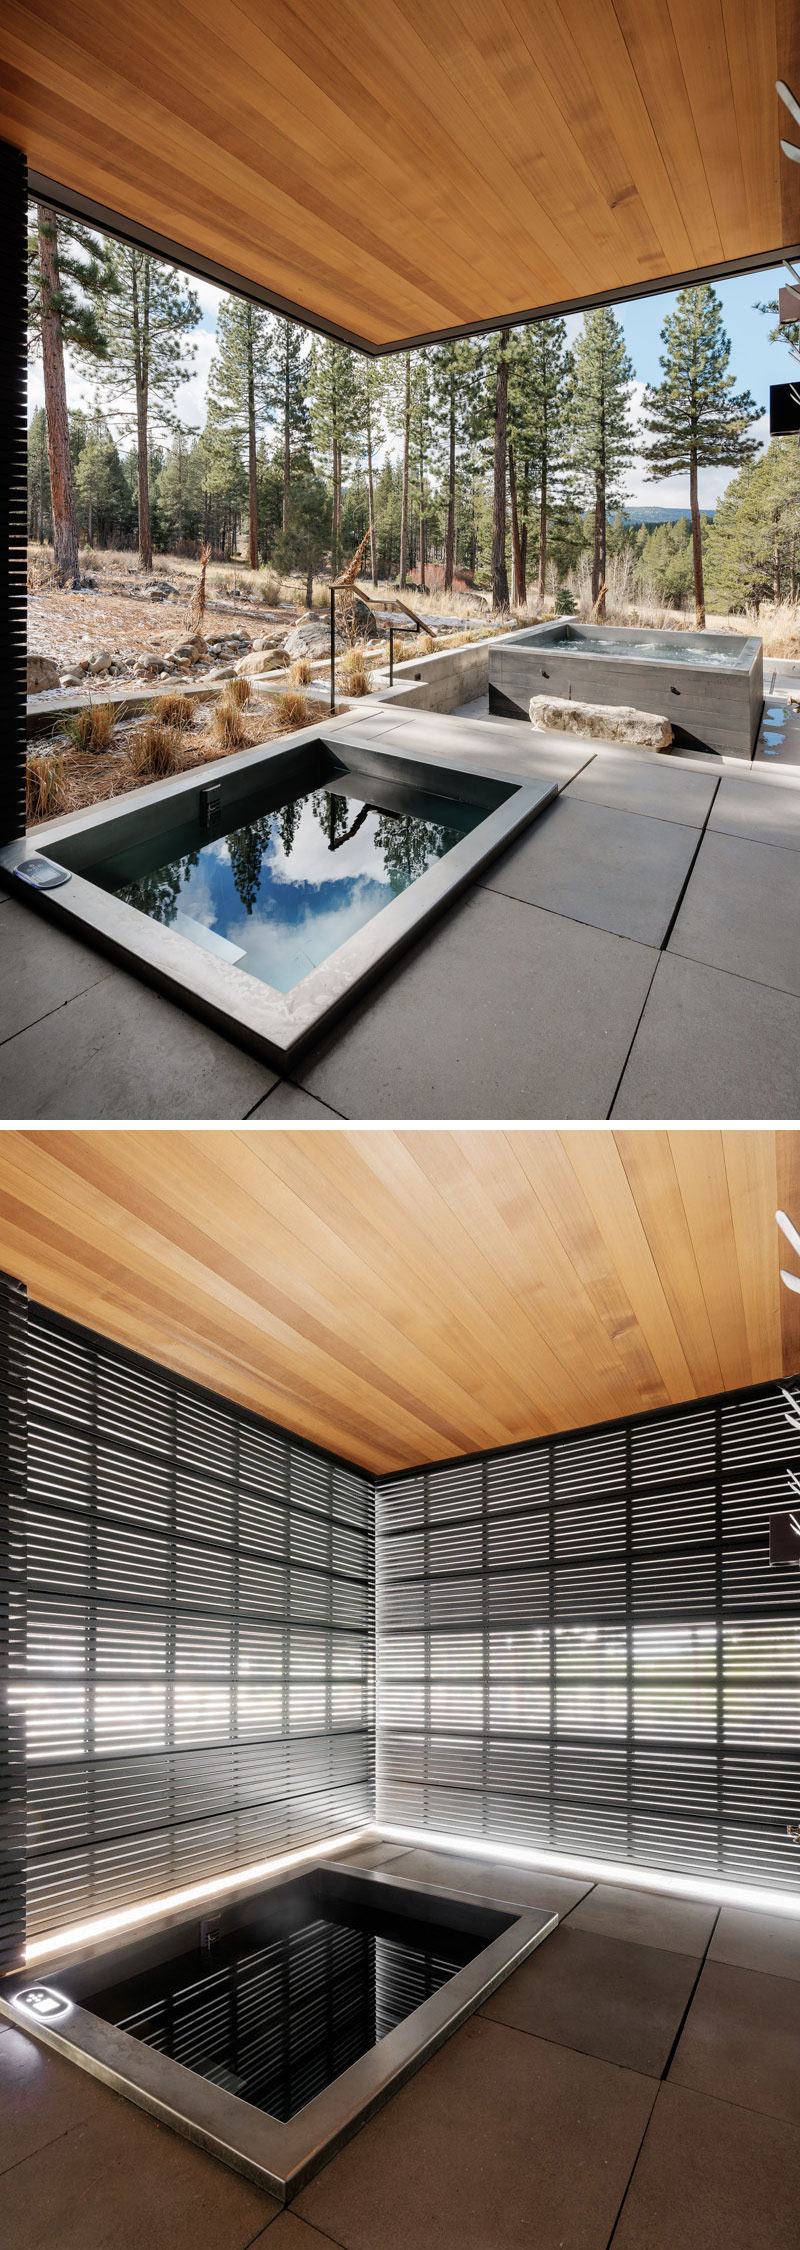 This modern house has an outdoor soaking tub with a black metal privacy screen that can be used when needed.